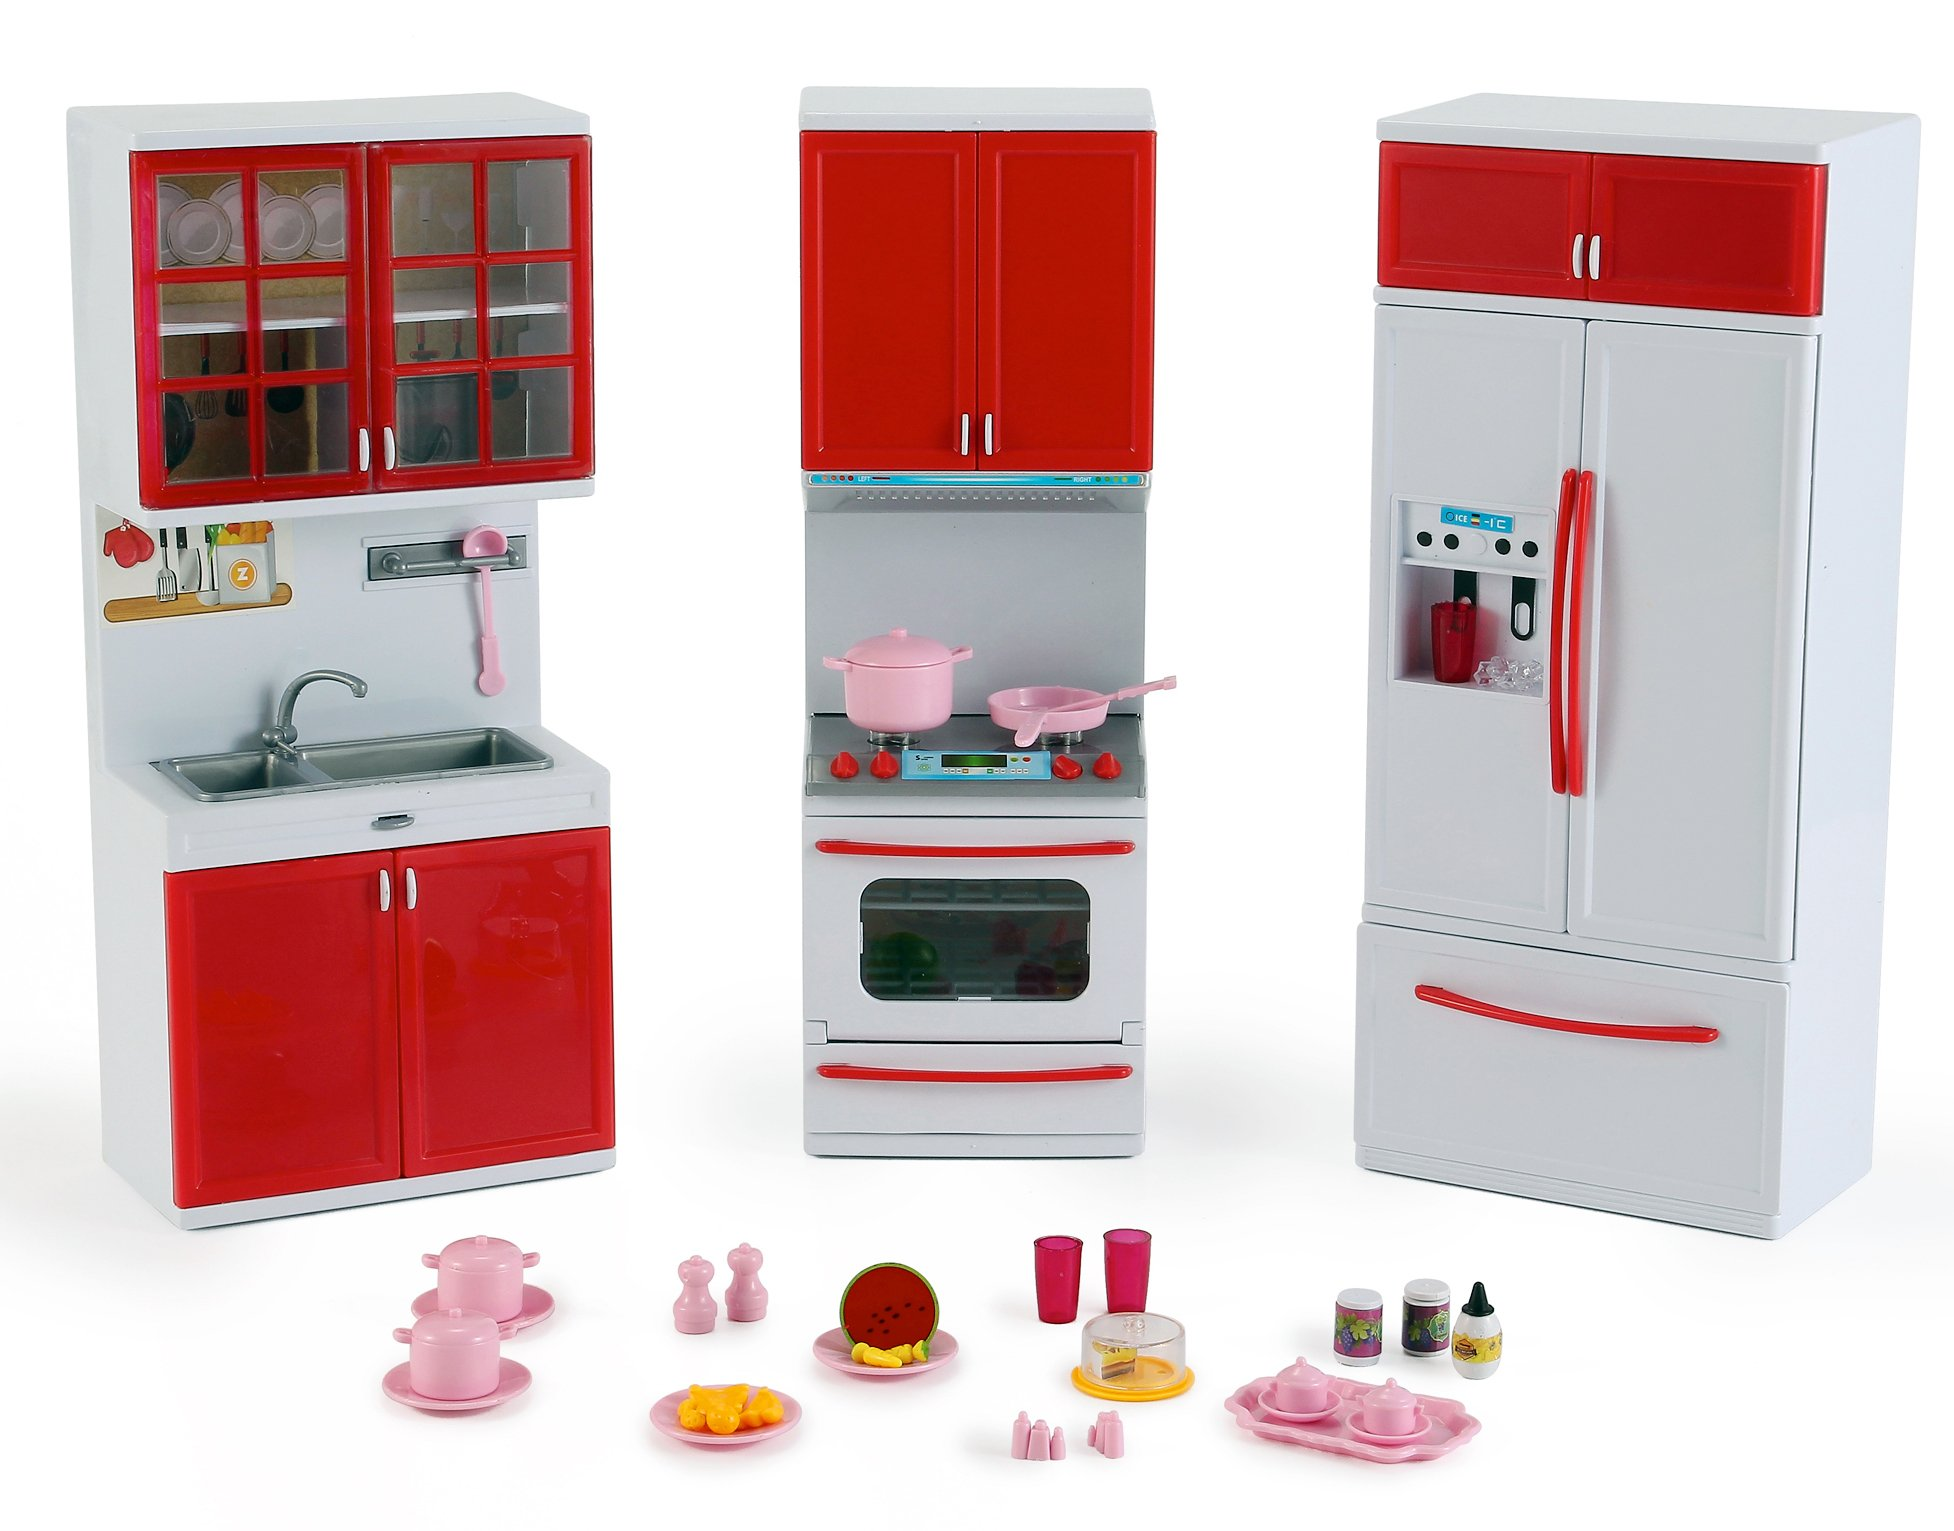 Liberty Imports Gourmet Red Kitchen Mini Toy Playset with Lights and Sounds, Perfect for 12 inches Dolls